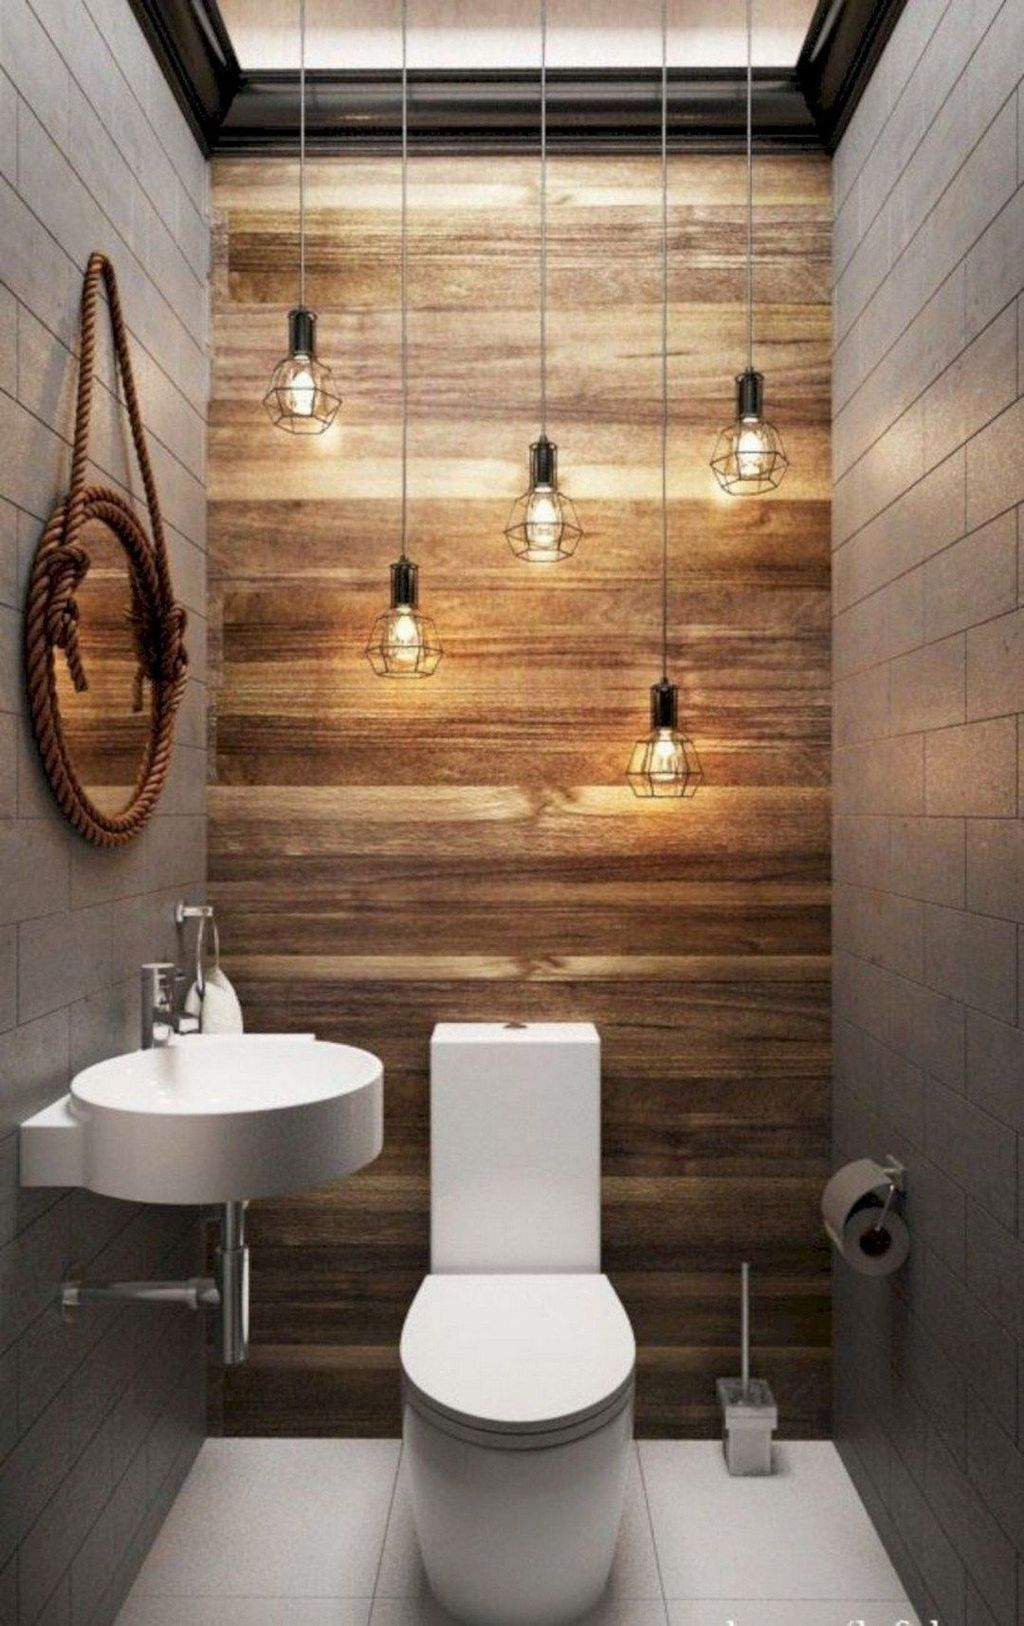 10+ Inspiring Small Bathroom Design Ideas With Wood Decor To